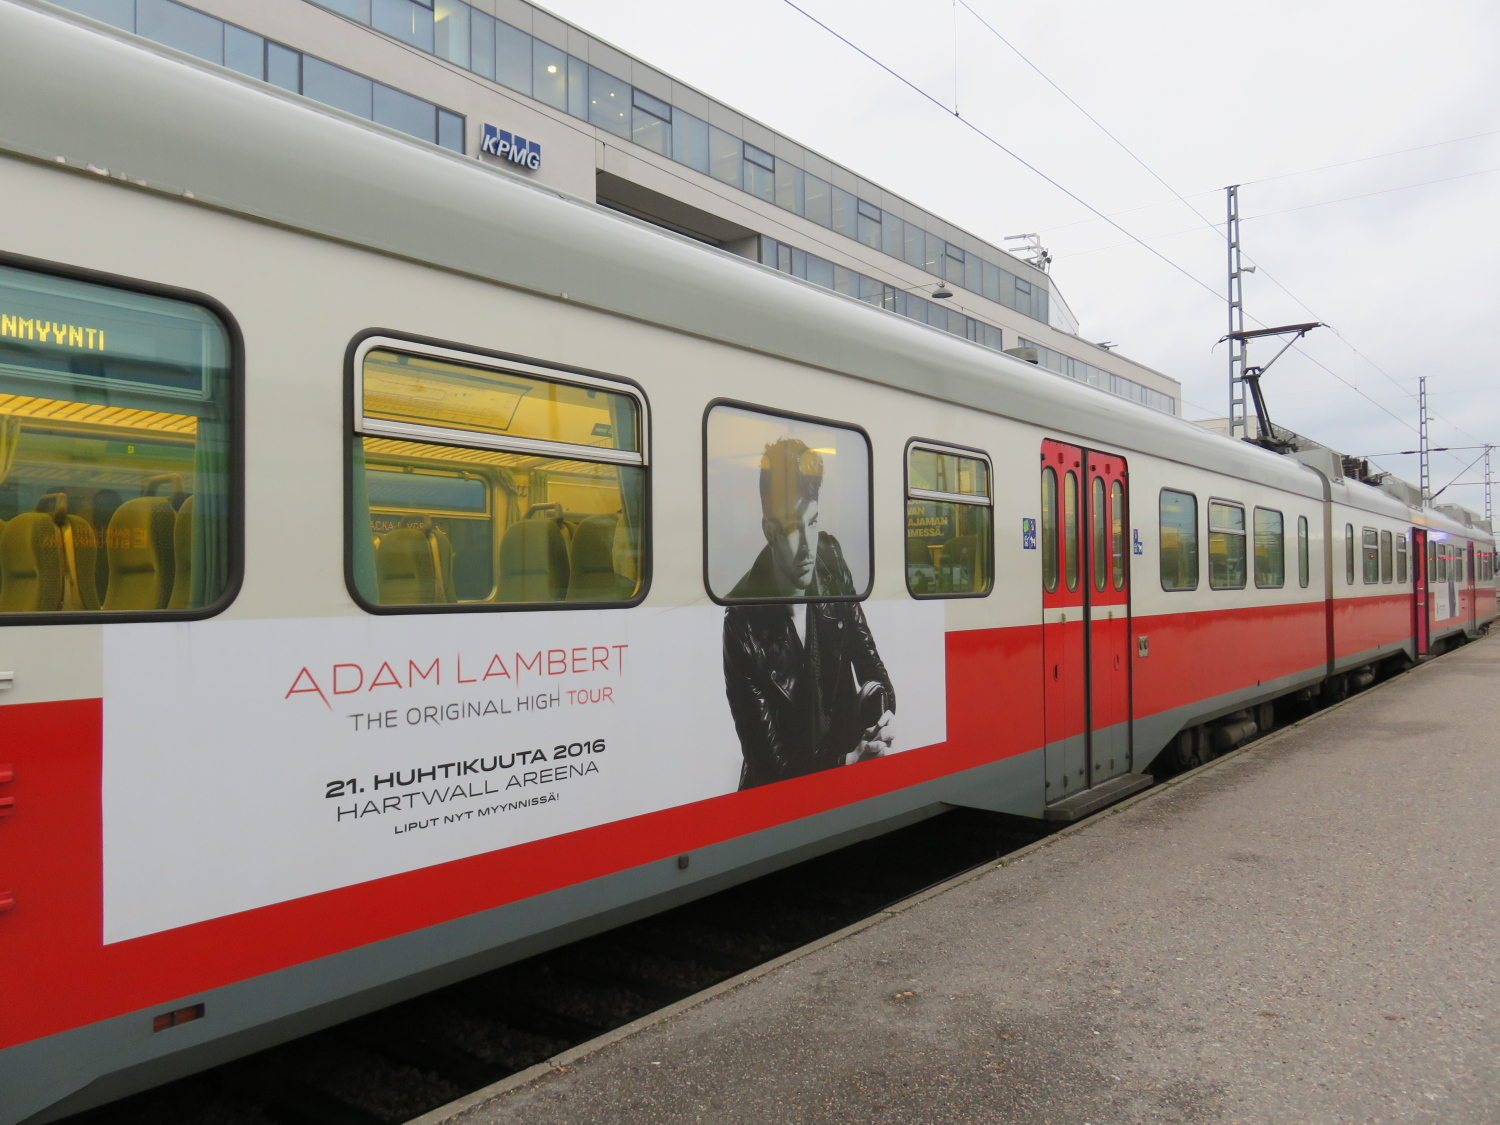 Adam Lambert TOH Tour Train Helsinki